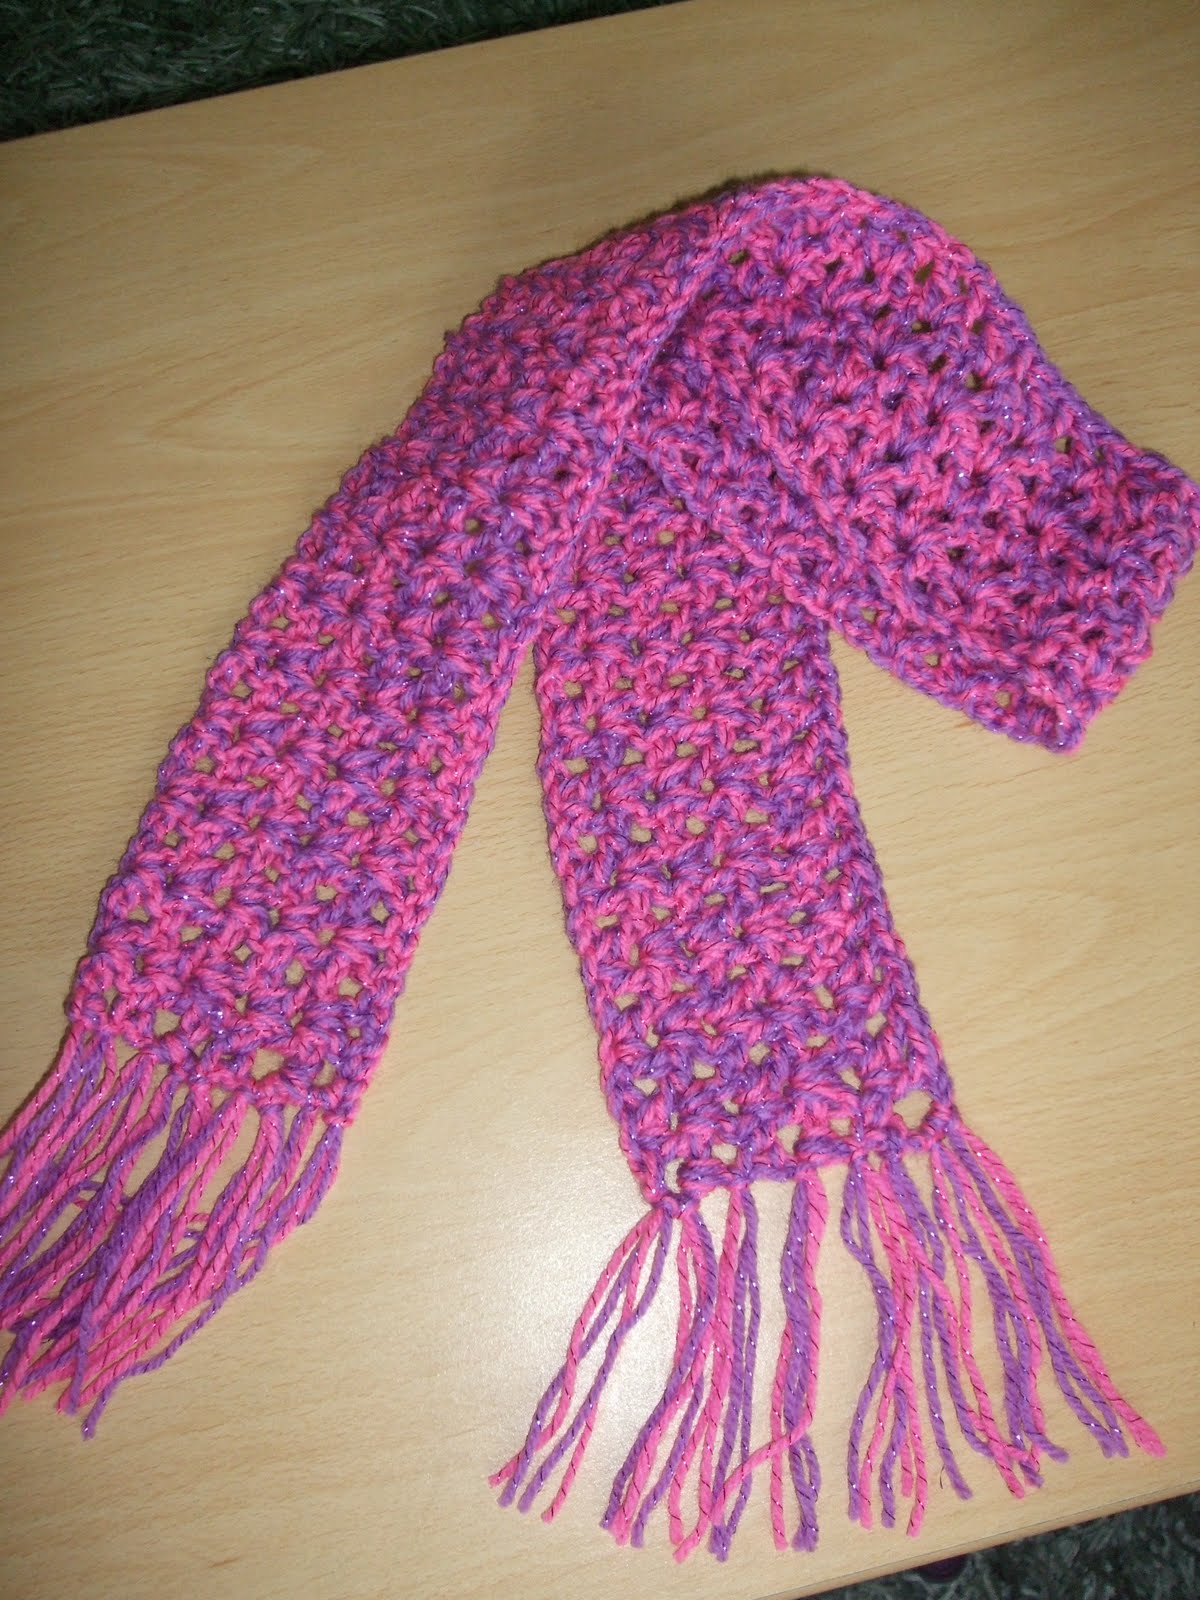 Channelle S Crochet Creations Toddlers Scarf